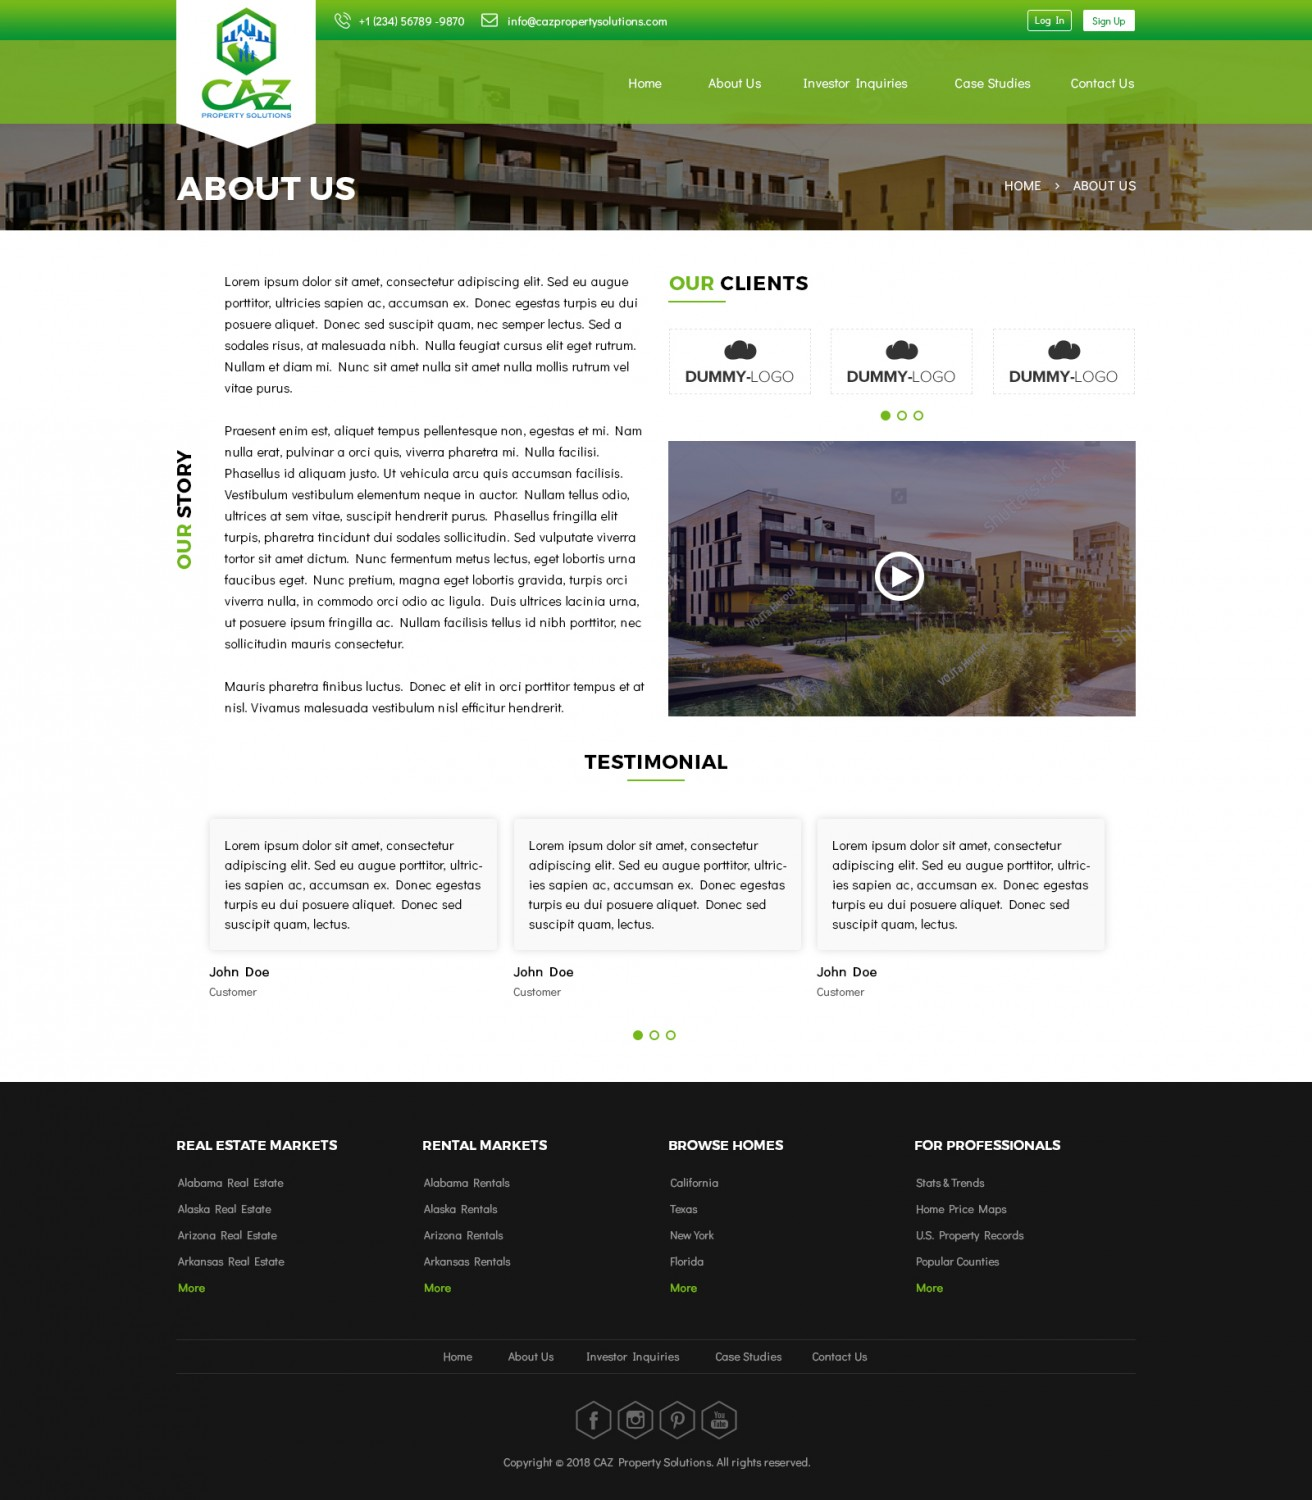 Modern, Elegant, Real Estate Web Design for a Company by Tamil Tech